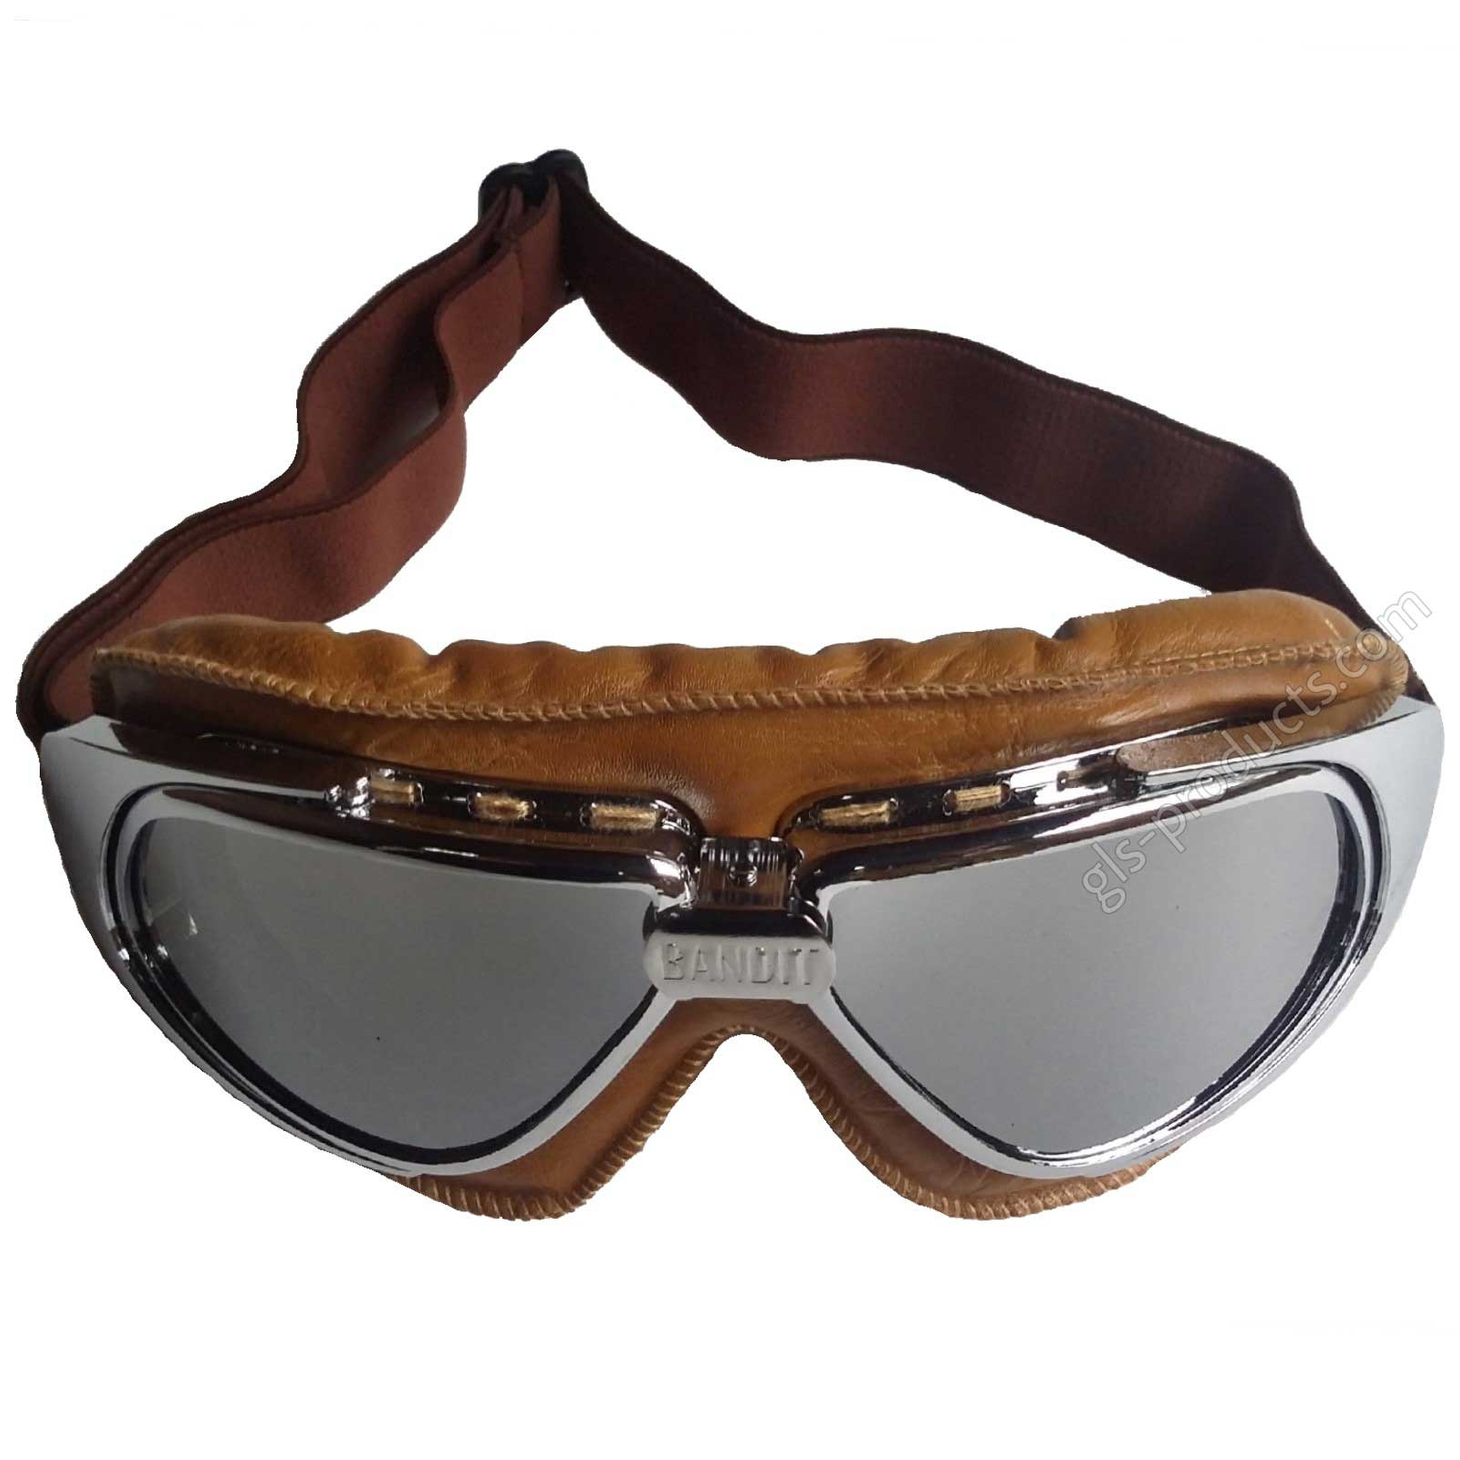 Bandit Motorcycle Glasses Goggles brown – Picture 6